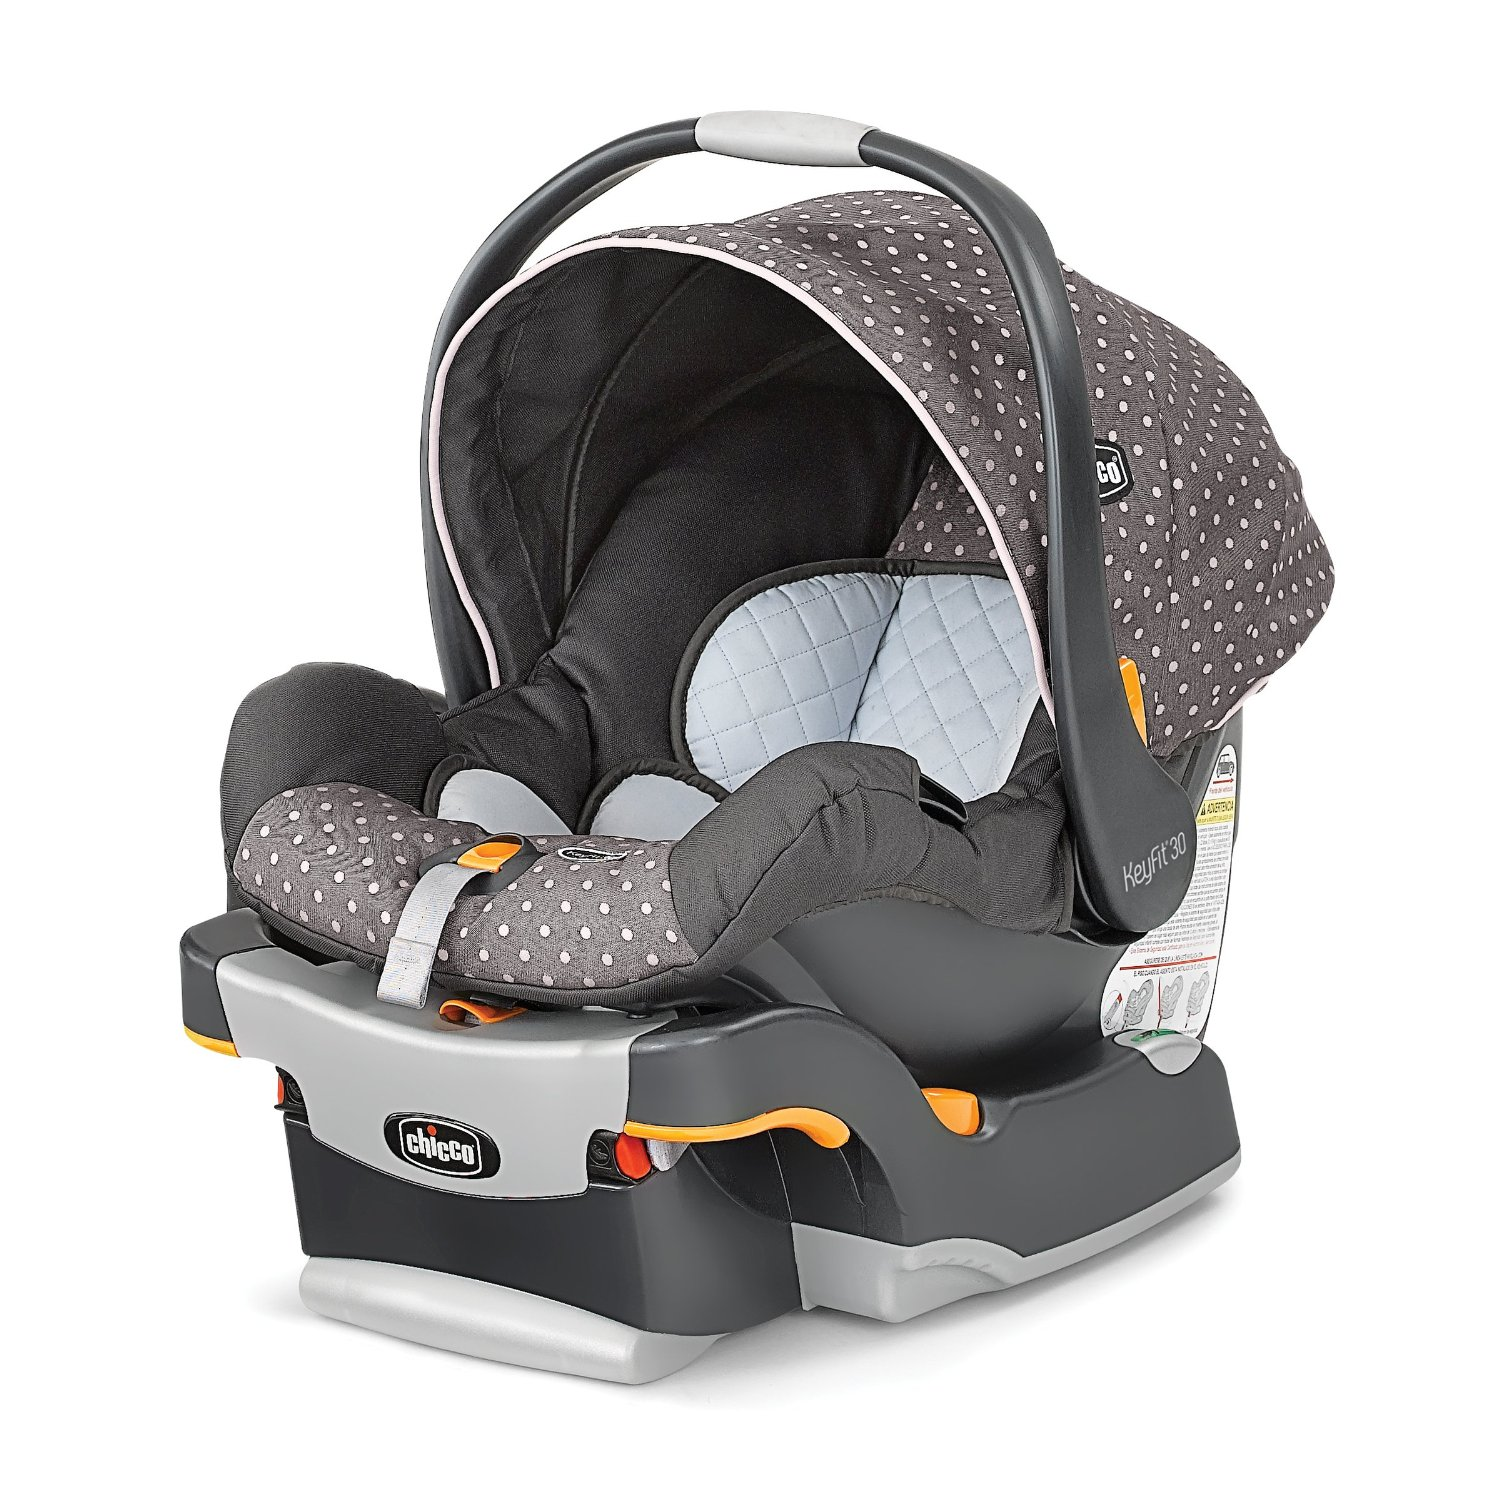 Top Rated Car Seats for 2018 - For All Budgets - Kid Sitting Safe